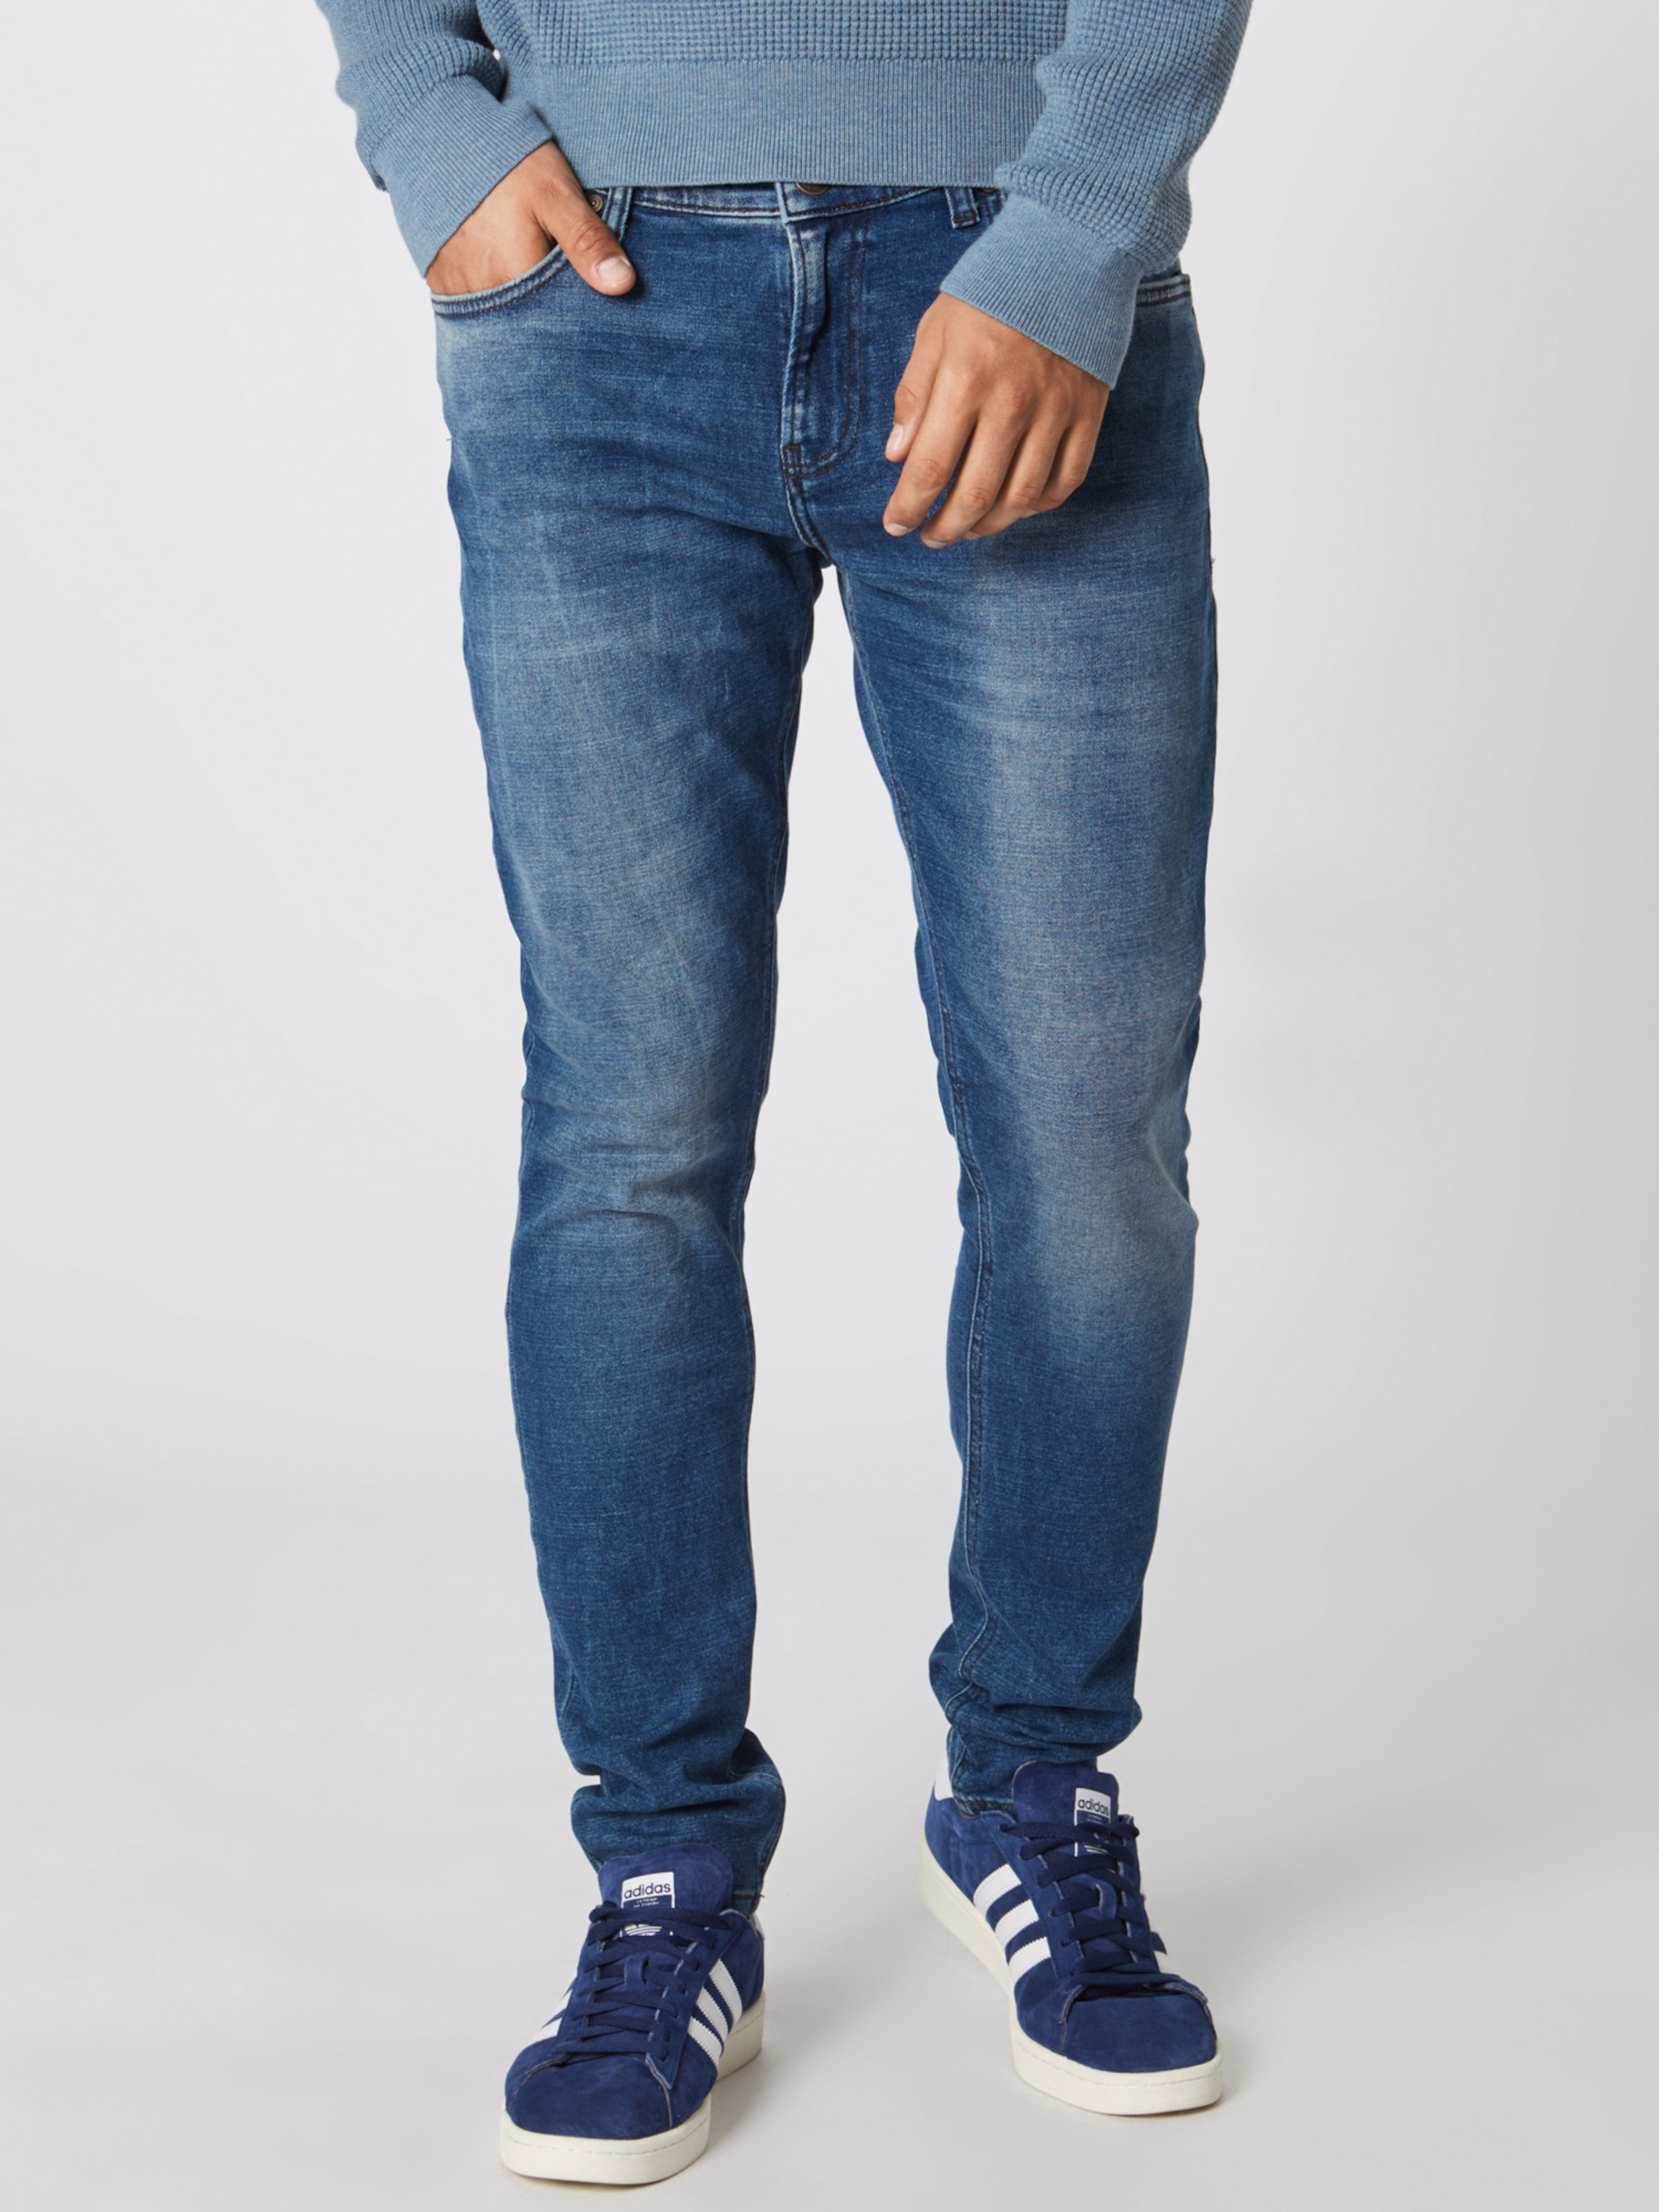 Ltb In 'smarty' Blue Jeans Denim OiXkZPuT